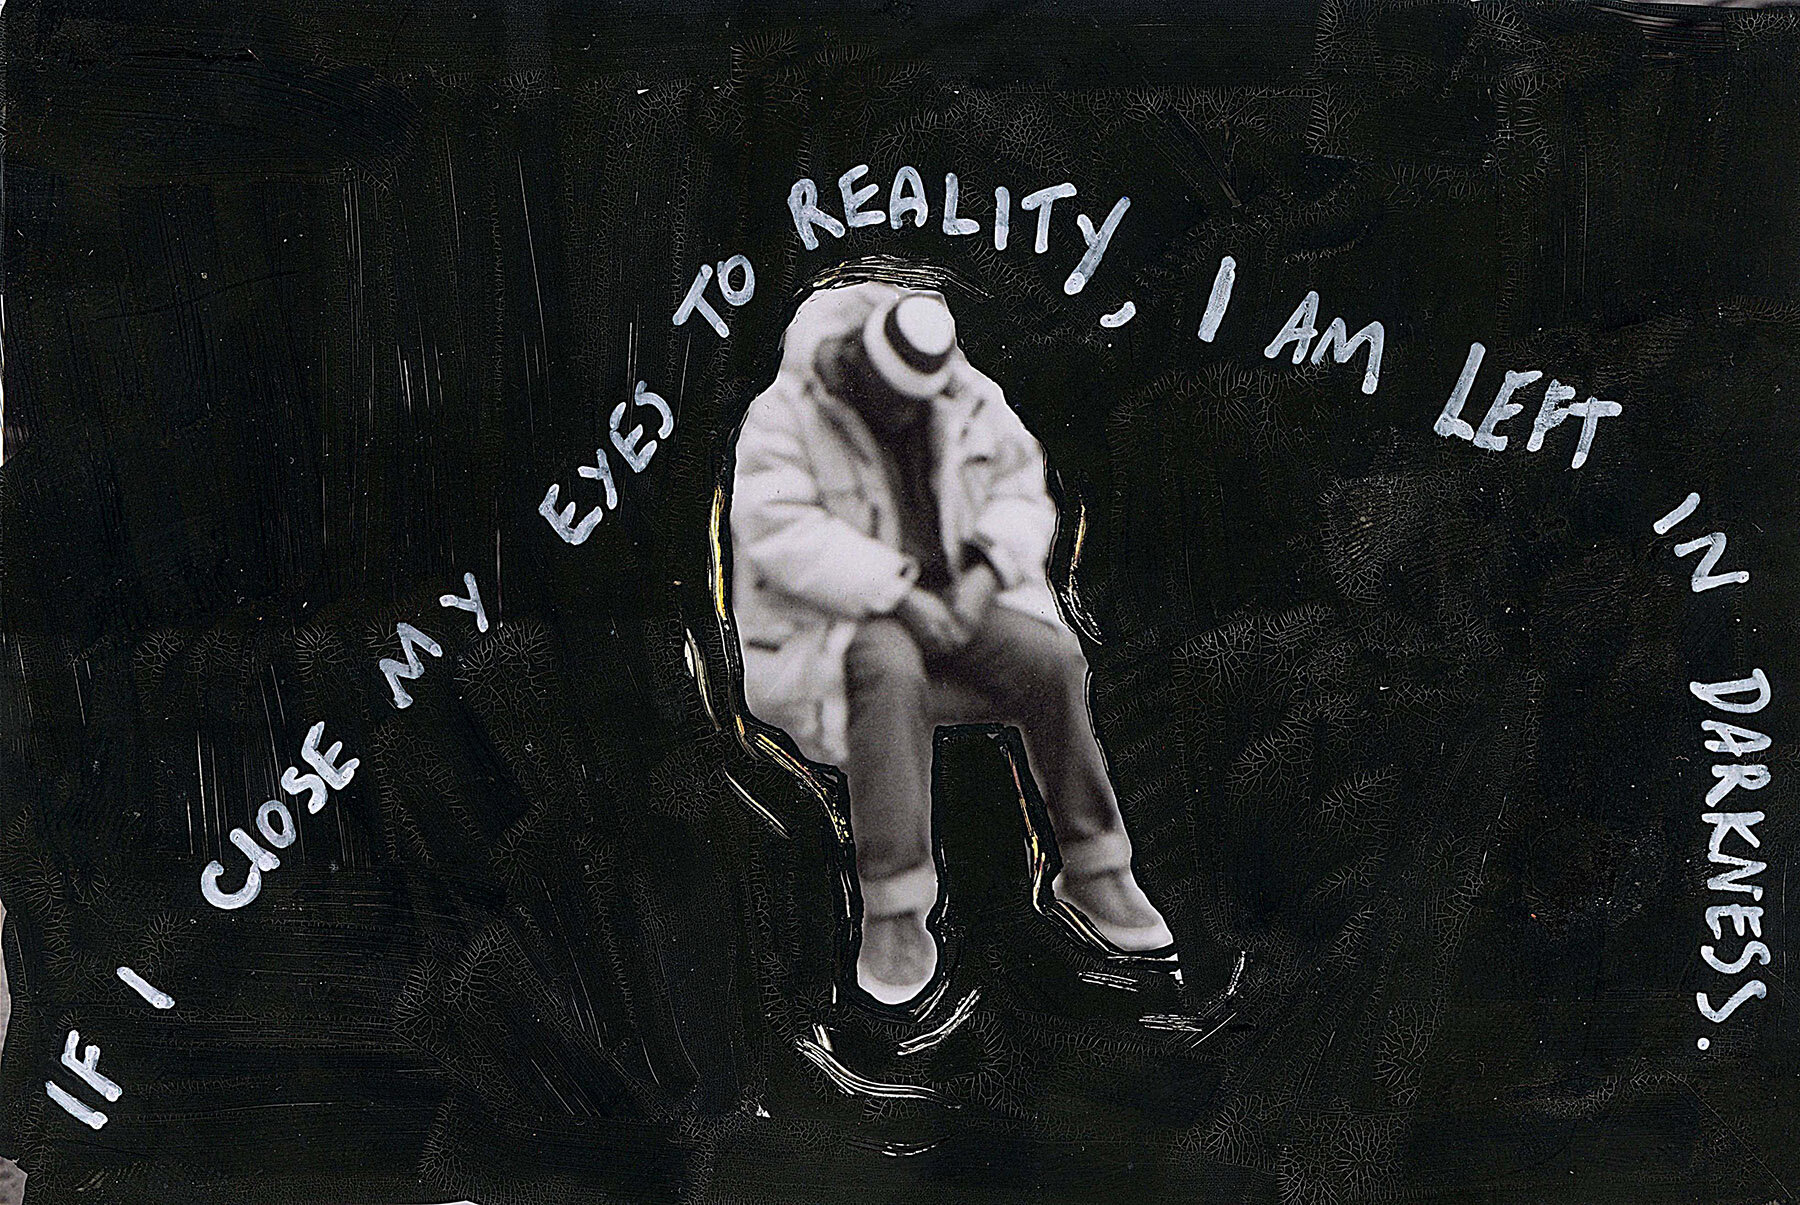 'If I close my eyes to Reality, I am left in Darkness' 2015, Berlin, Inkjet photograph & Acrylic, 10x15cm